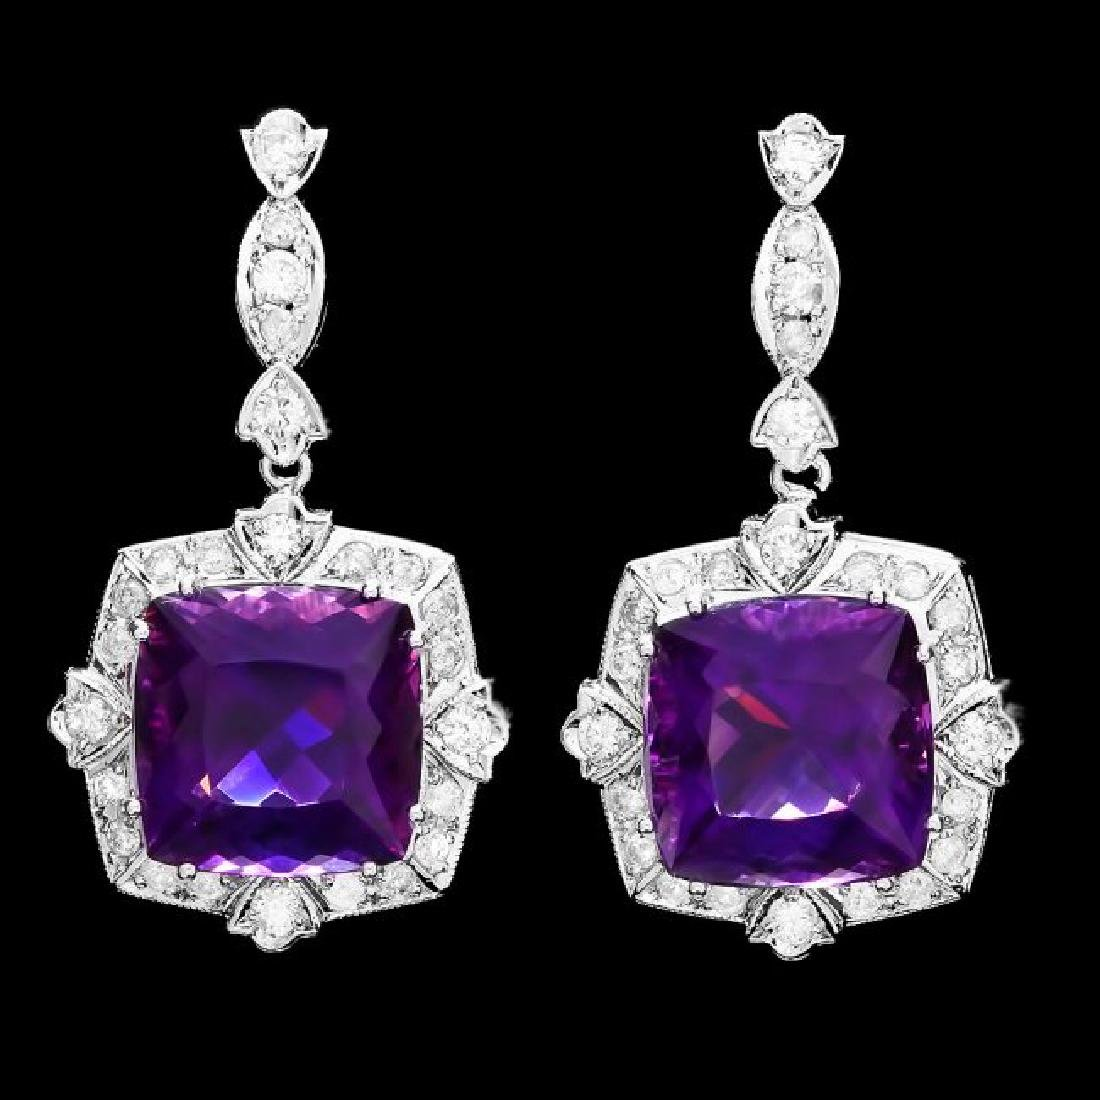 14k Gold 24ct Amethyst 1.85ct Diamond Earrings